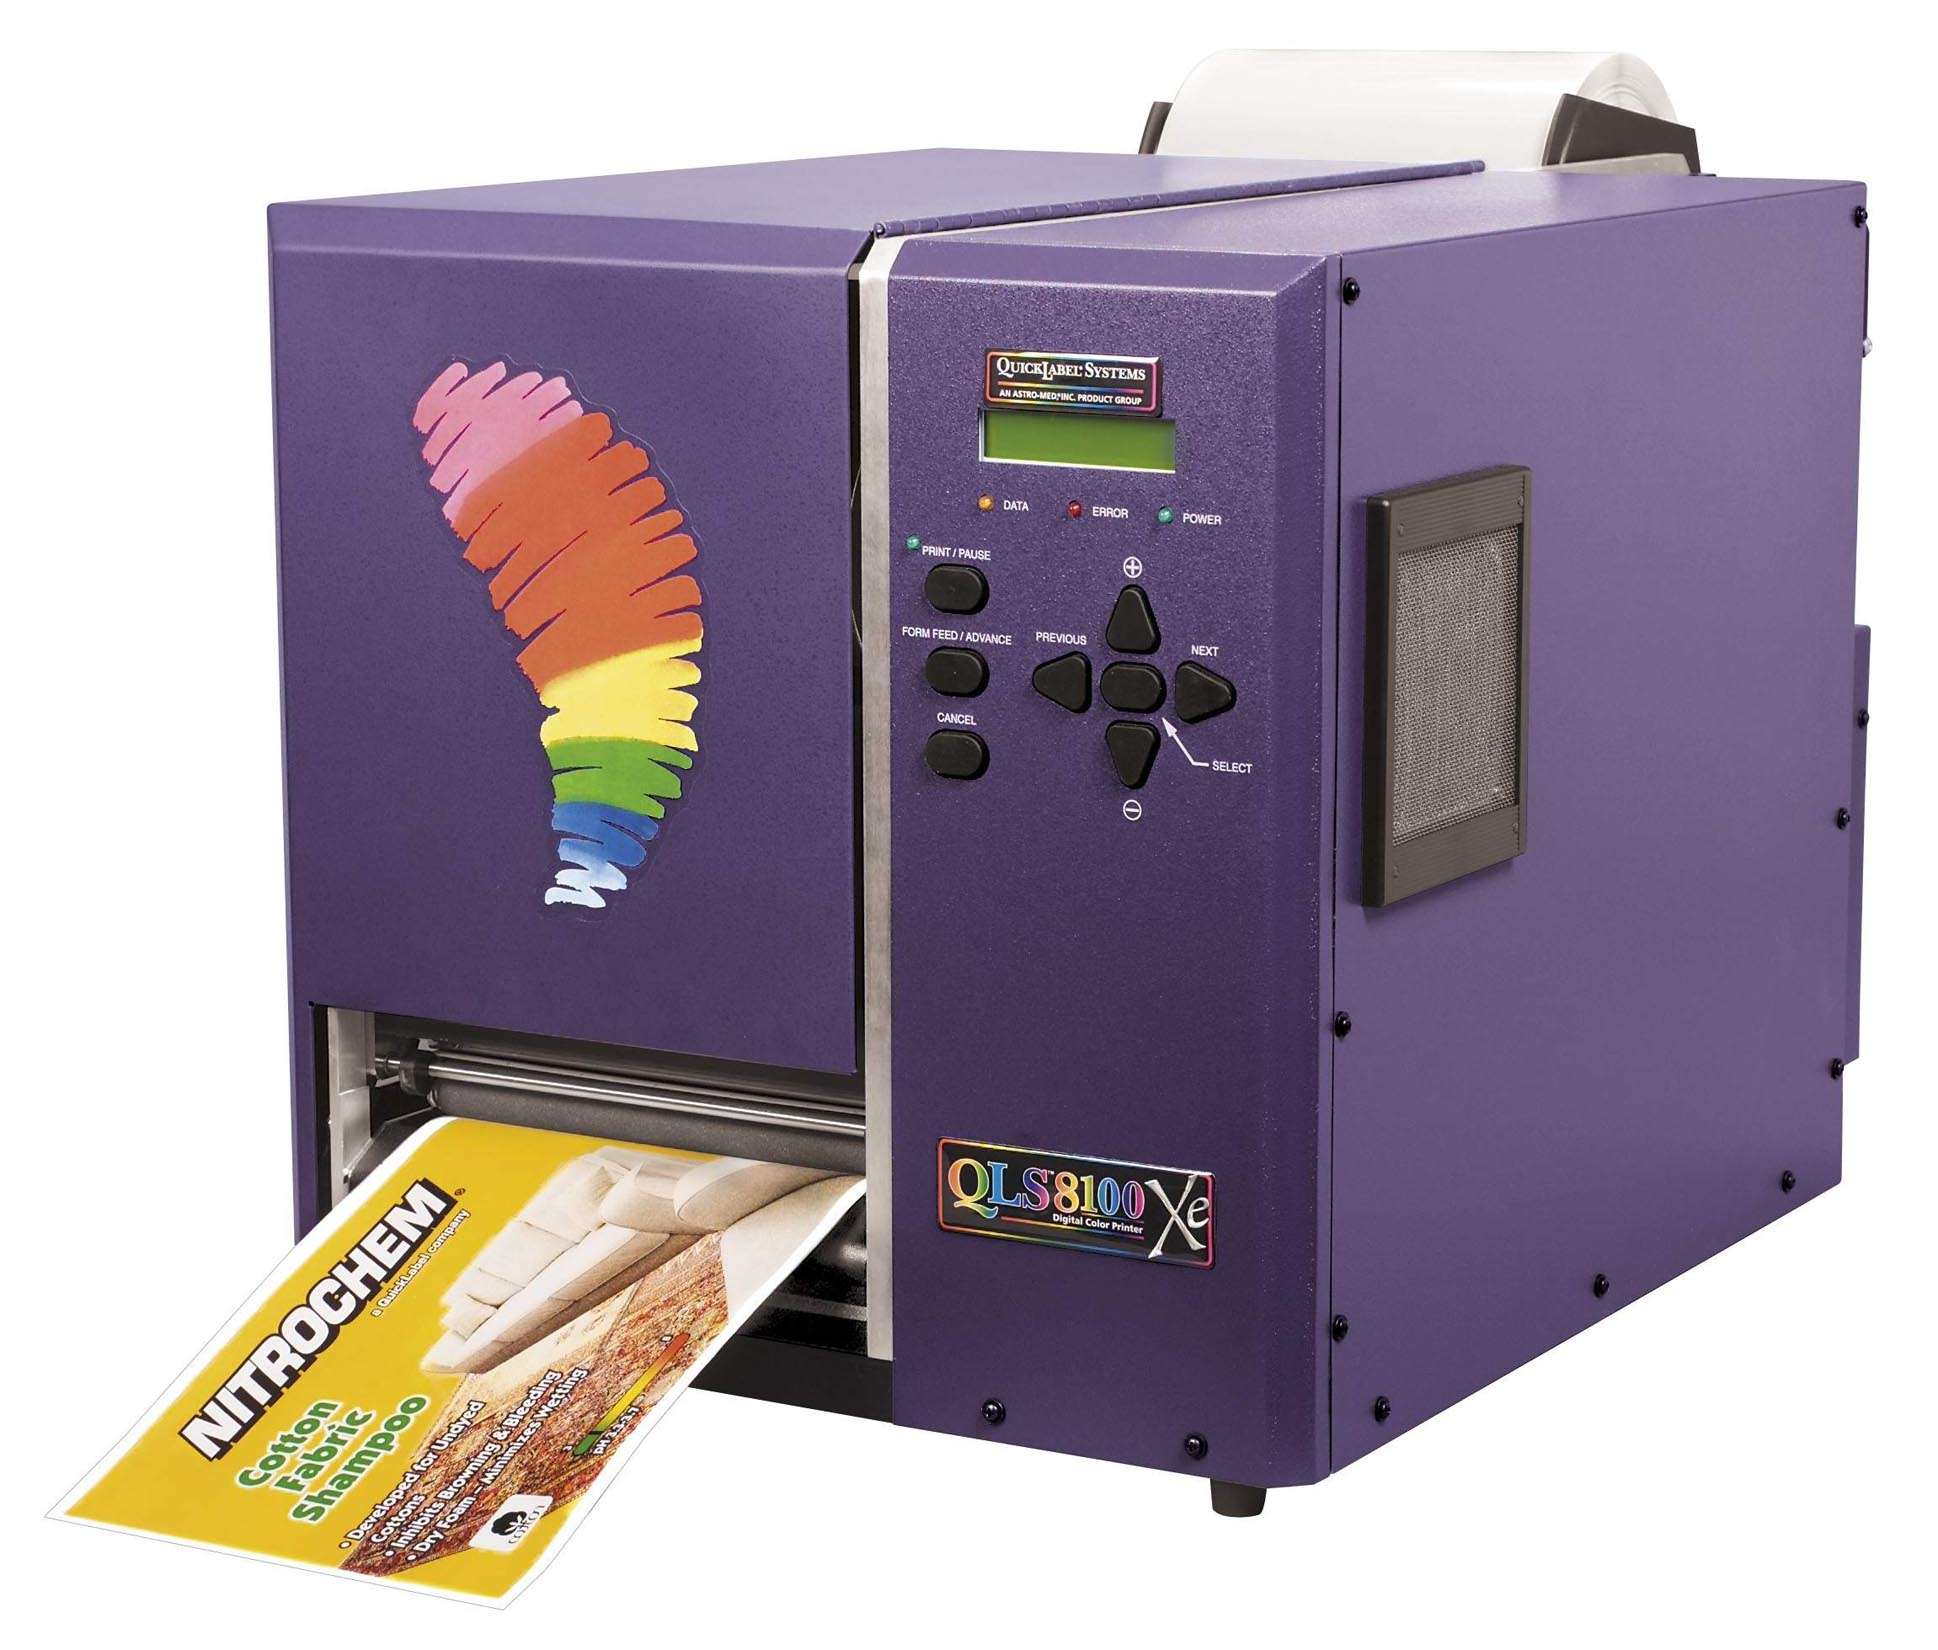 Label Printer allows various in-house color applications.